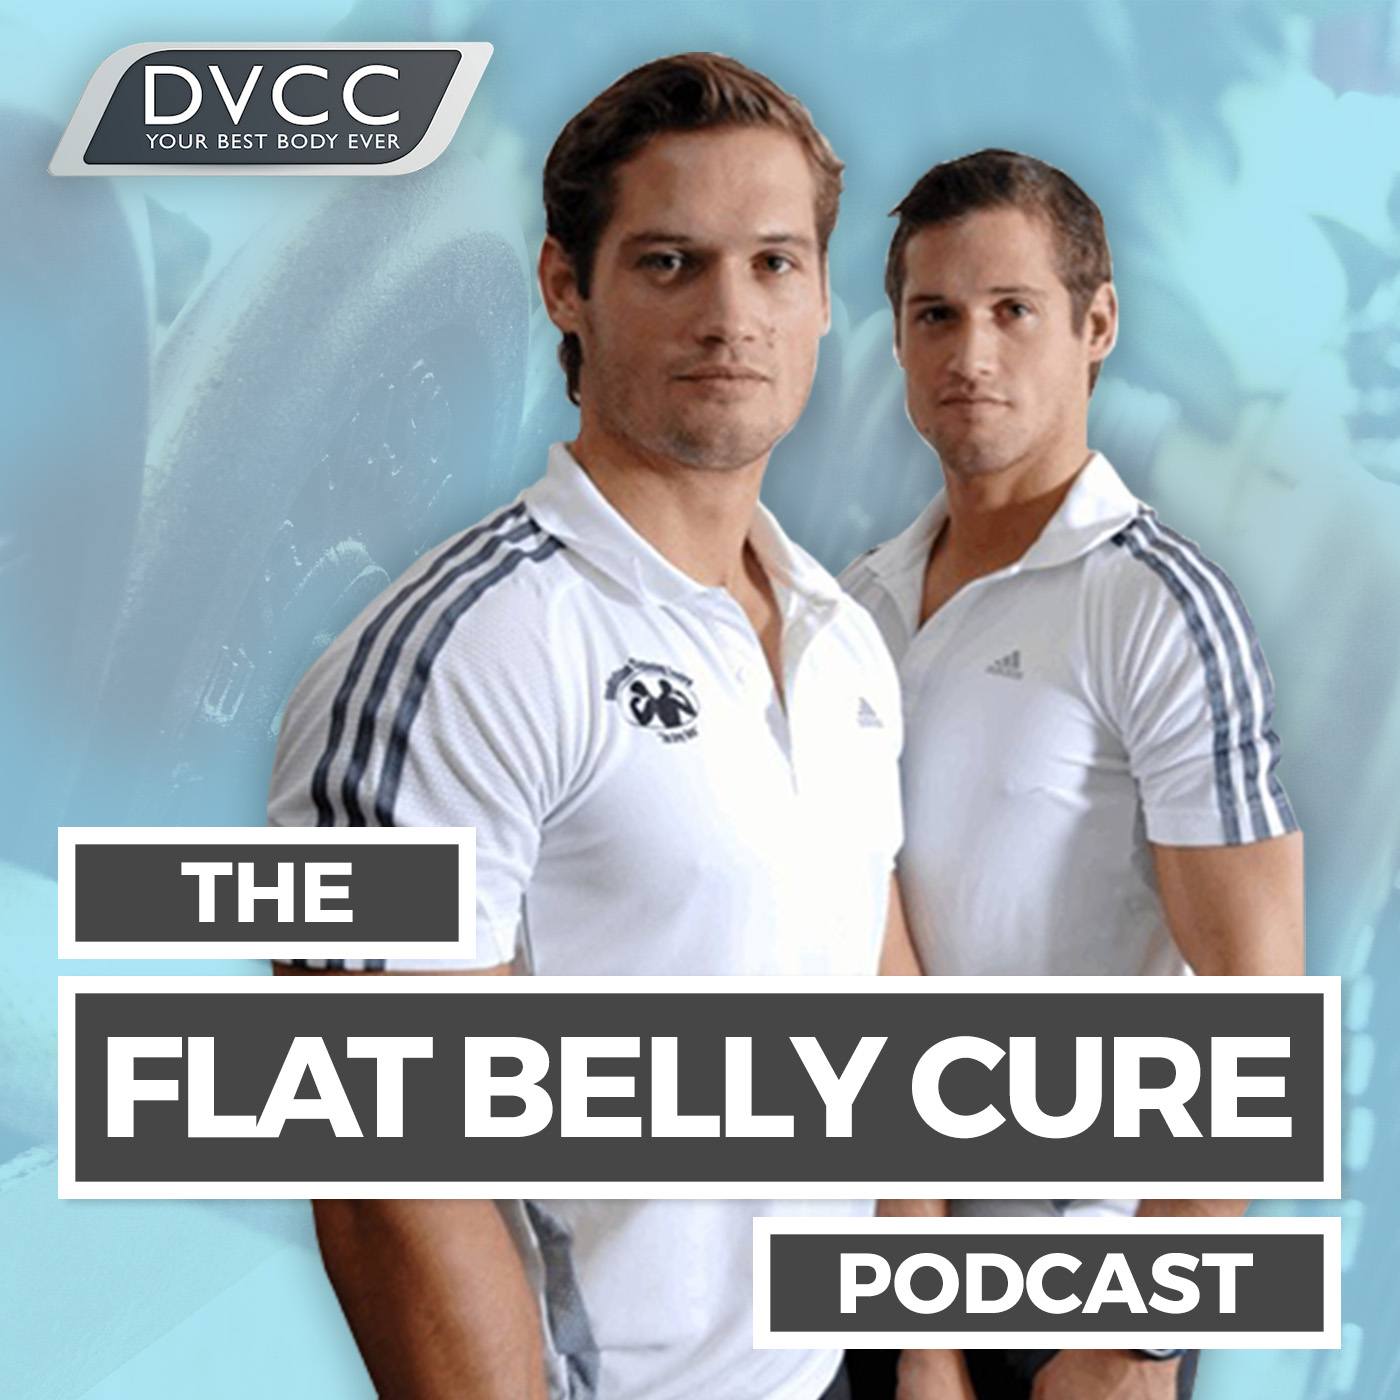 The Flat Belly Cure Podcast